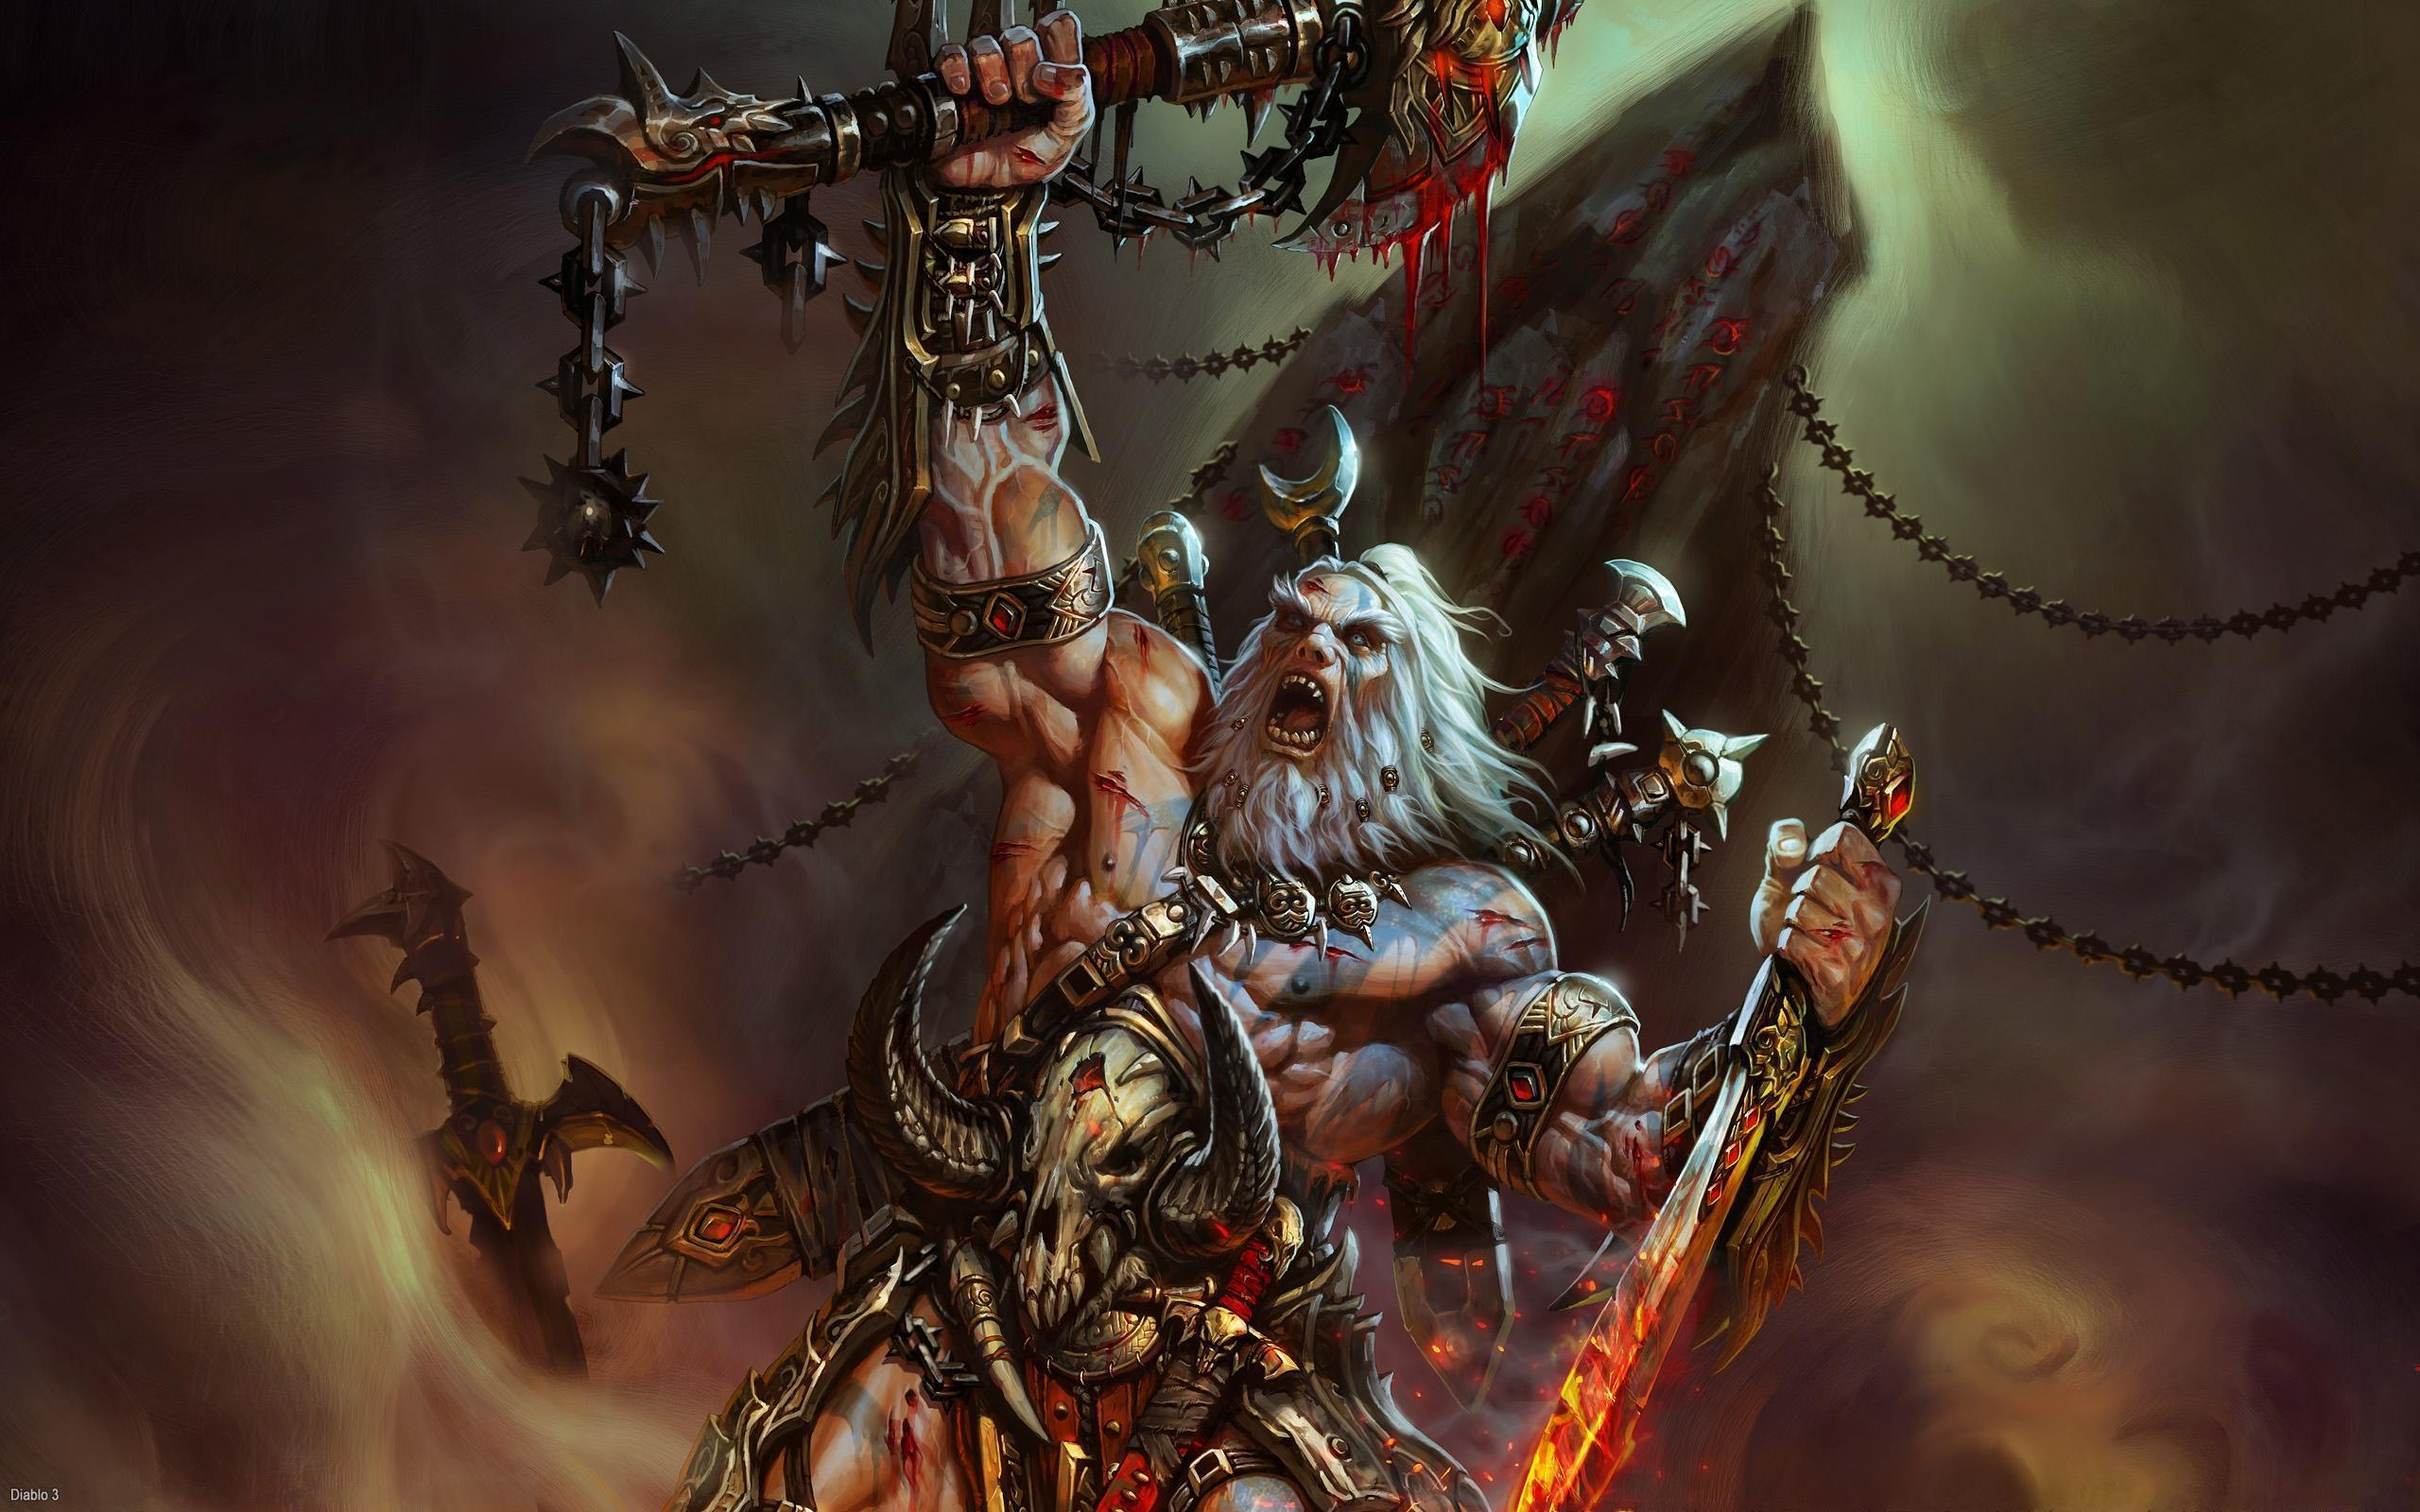 the Diablo 3 Warrior Wallpaper Diablo 3 Warrior iPhone Wallpaper 2560x1600